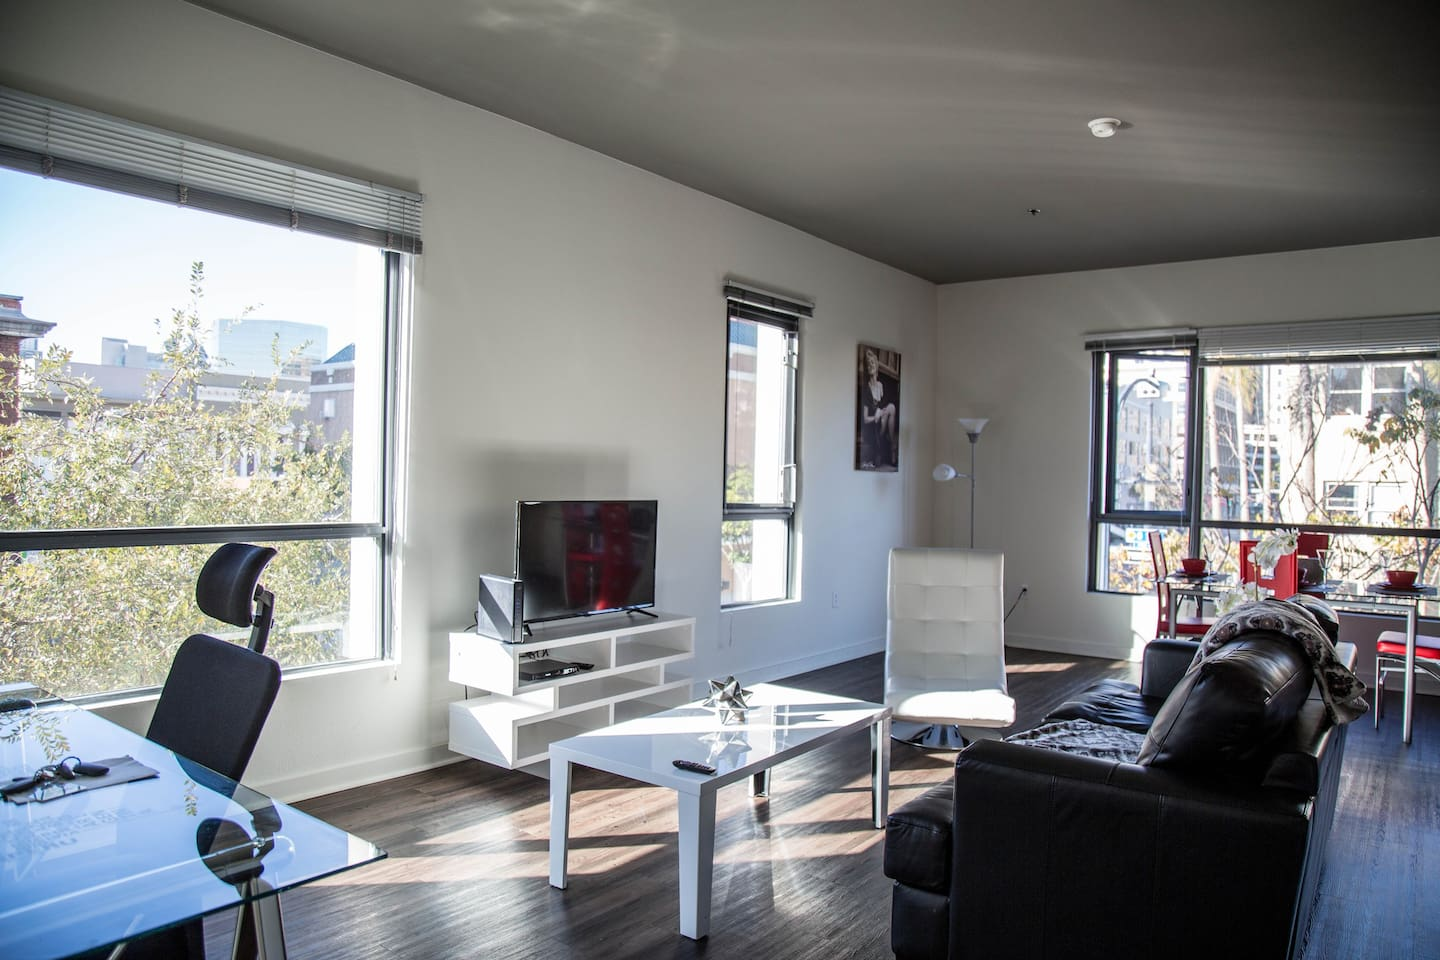 2 bedroom furnished apartment in gaslamp quarter apartments for